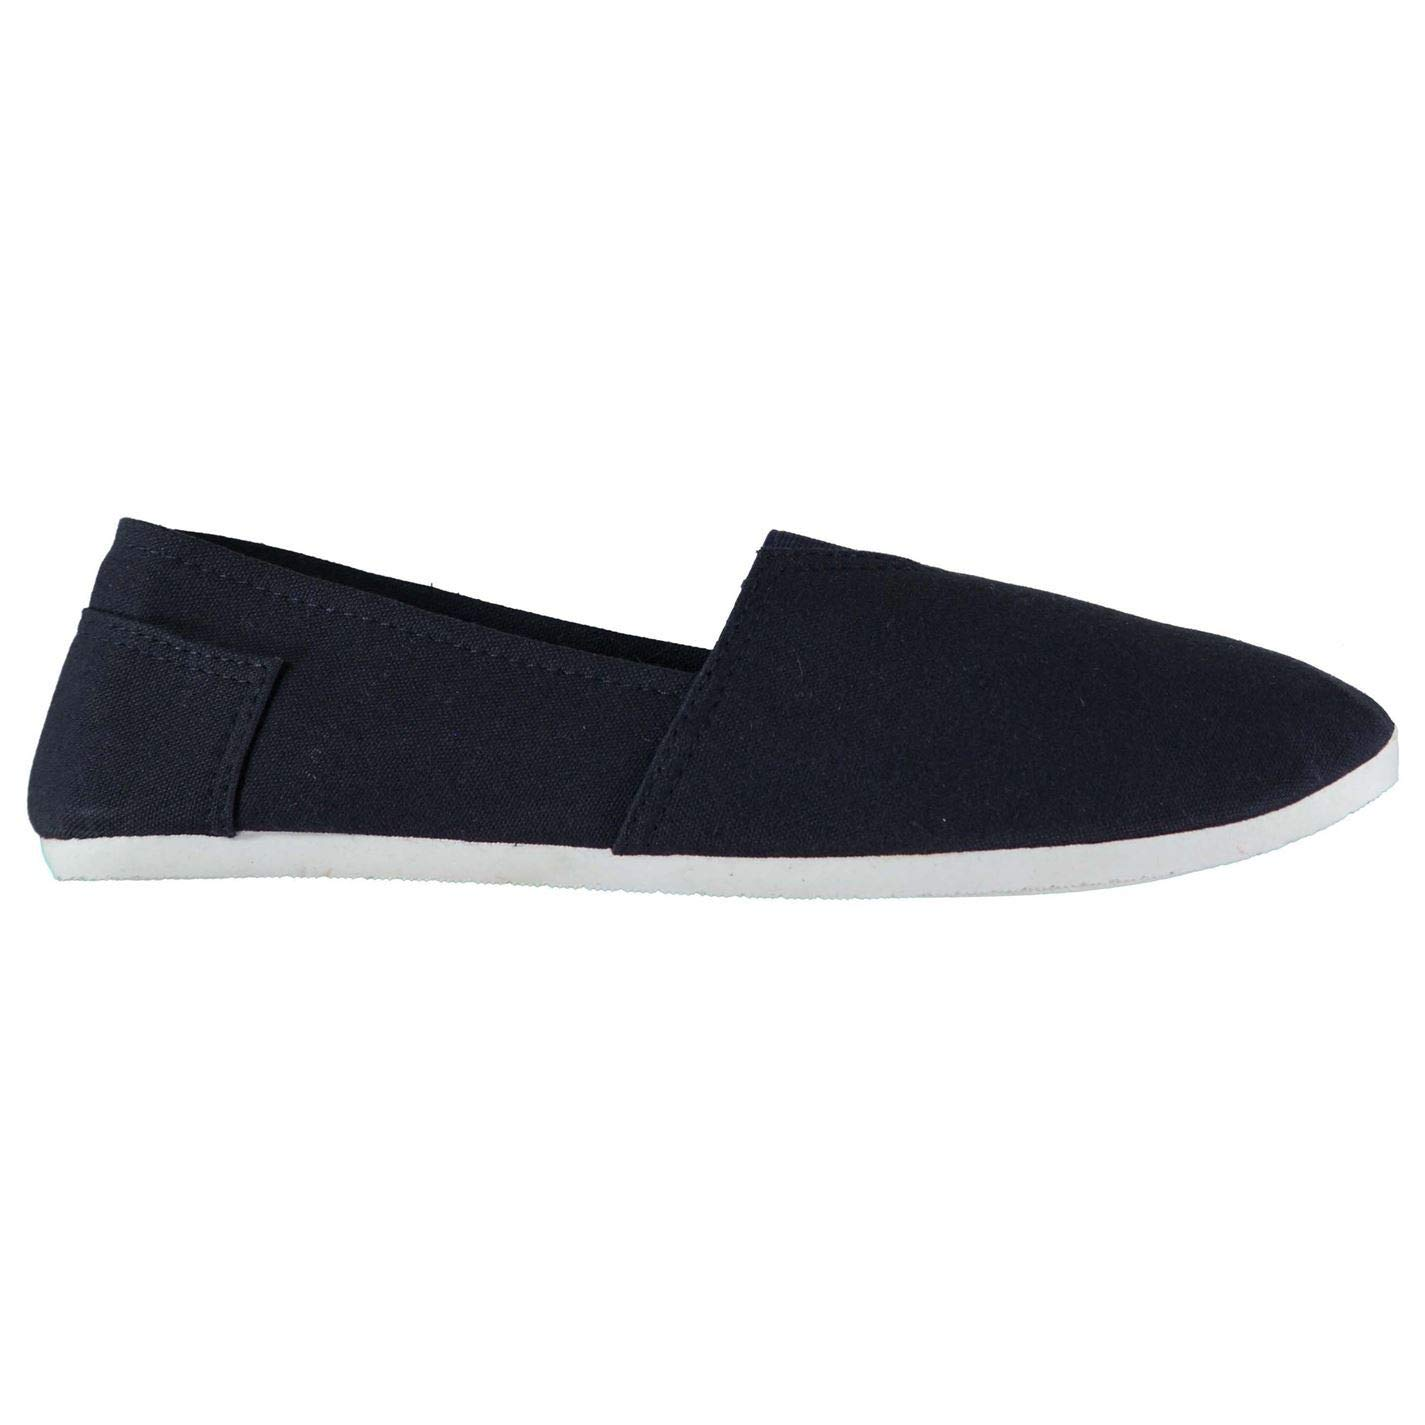 b23d7b64e20bd9 Amazon.com | Slazenger SAMS Canvas Shoes Mens Footwear Trainers Sneakers |  Fashion Sneakers